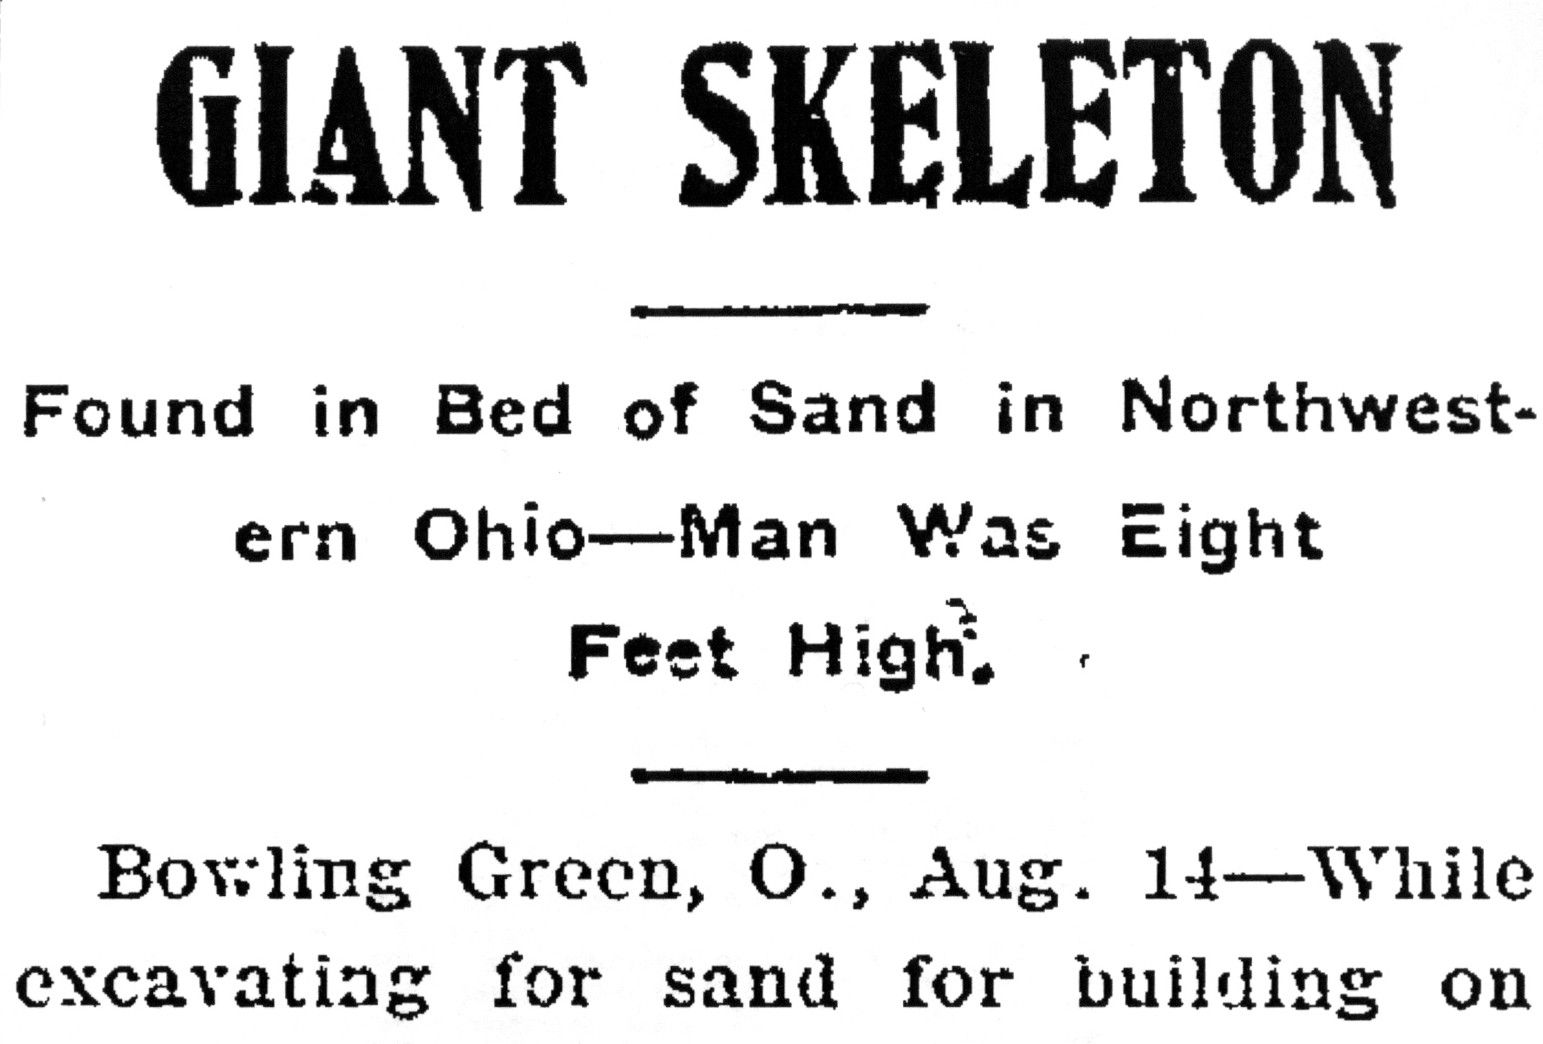 Giant Human Skeleton Uncovered In Ohio Jpg 1543 1044 Nephilim Giants Mystery Of History Giants